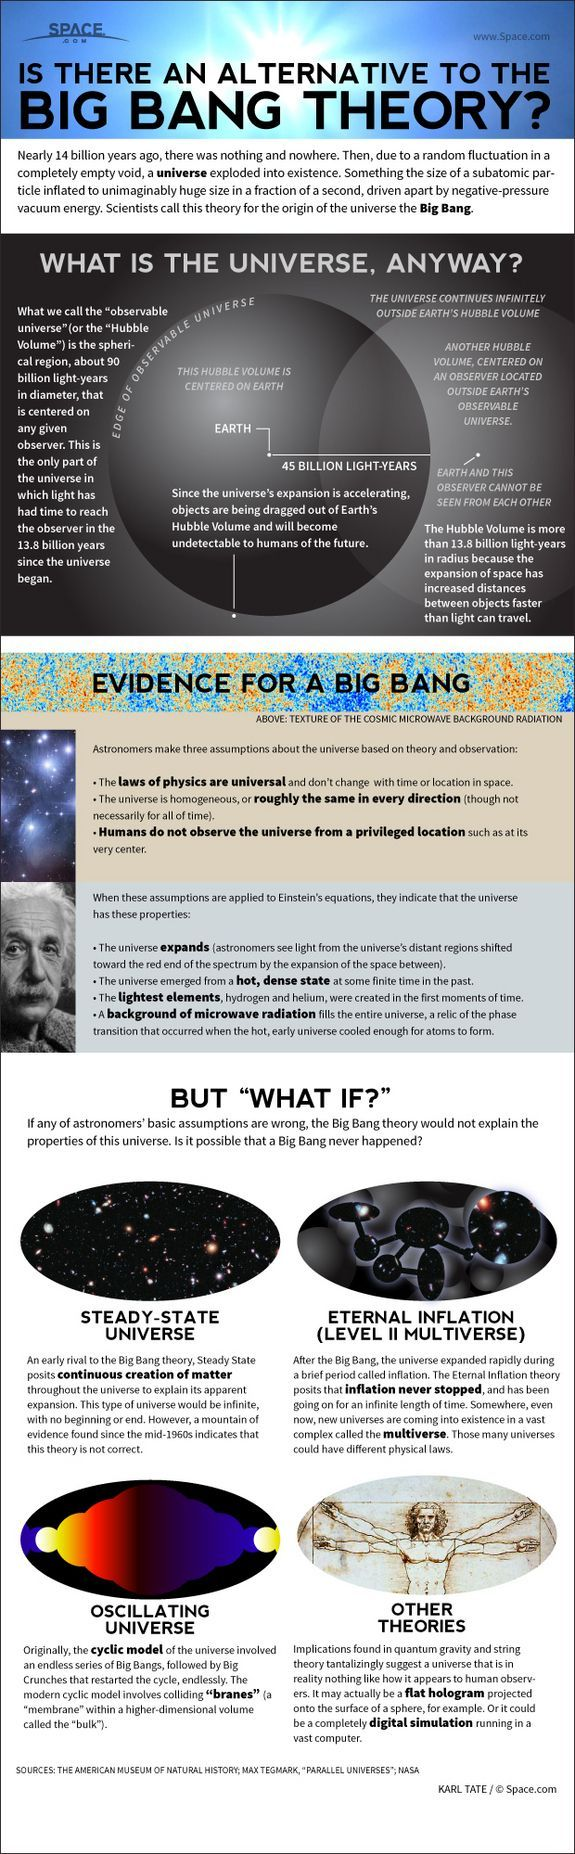 La teoría del Big Bang y sus alternativas